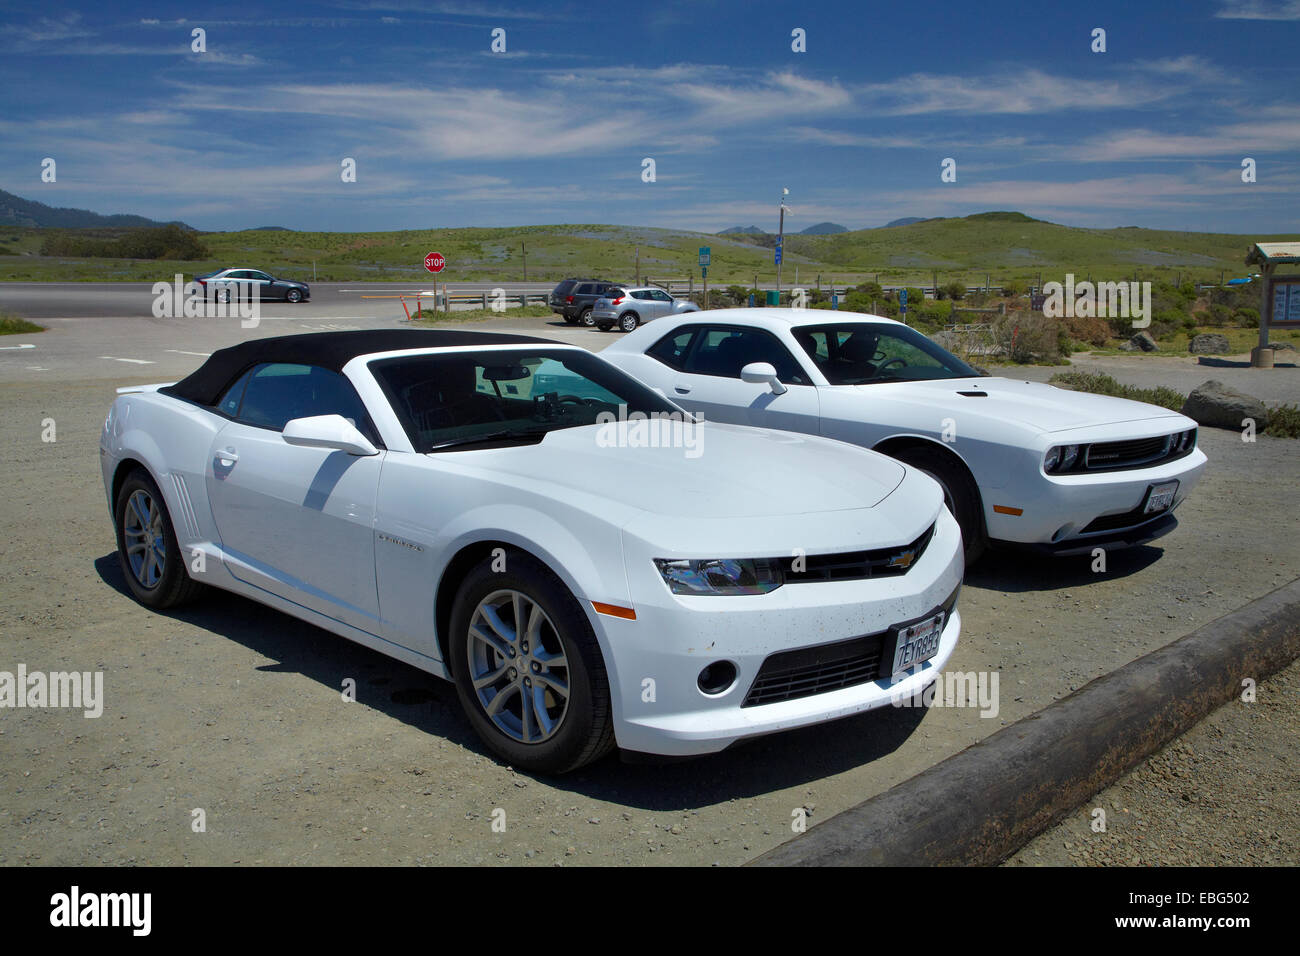 Chevrolet Comaro and Dodge Challenger sports cars by Pacific Coast Highway, near San Simeon, Central Coast, California, - Stock Image